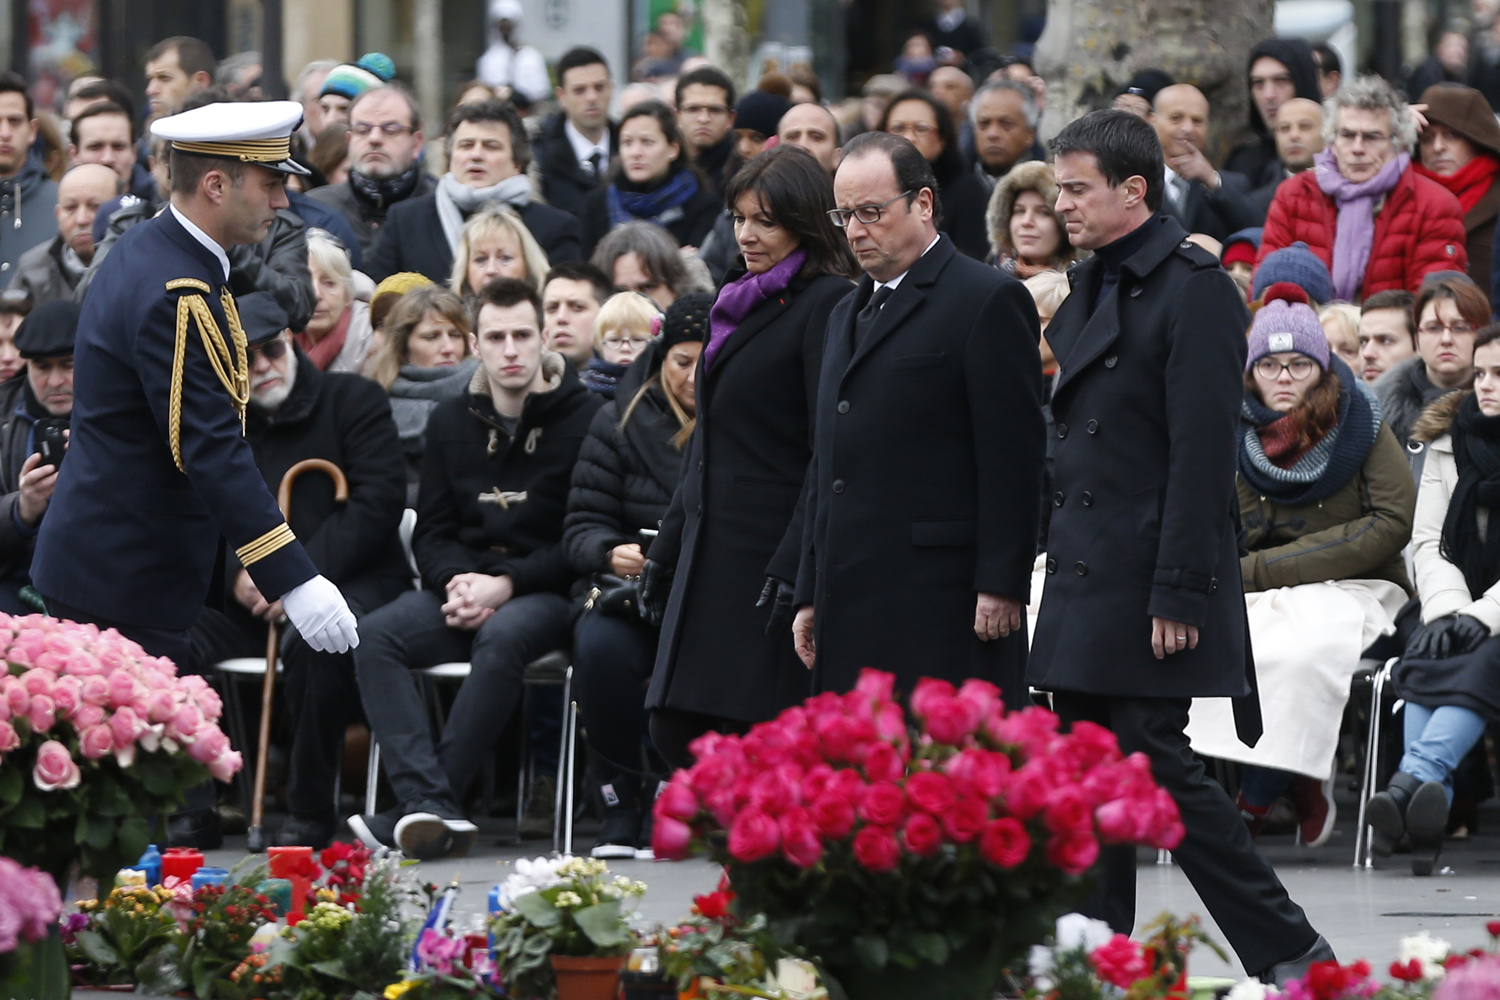 French Paris' mayor Anne Hidalgo (C), French President Francois Hollande (2ndR) and French Prime minister Manuel Valls (R) walk during a remembrance rally at Place de la Republique (Republic square) on January 10, 2016 in Paris, to mark a year since 1.6 million people thronged the French capital in a show of unity after attacks on the Charlie Hebdo newspaper and a Jewish supermarket. Just as it was last year, the vast Place de la Republique will be the focus of the gathering as people reiterate their support for freedom of expression and remember the other victims of what would become a year of jihadist outrages in France, culminating in the November 13 coordinated shootings and suicide bombings that killed 130 people and were claimed by the Islamic State (IS) group. AFP PHOTO / THOMAS SAMSON / AFP / THOMAS SAMSON